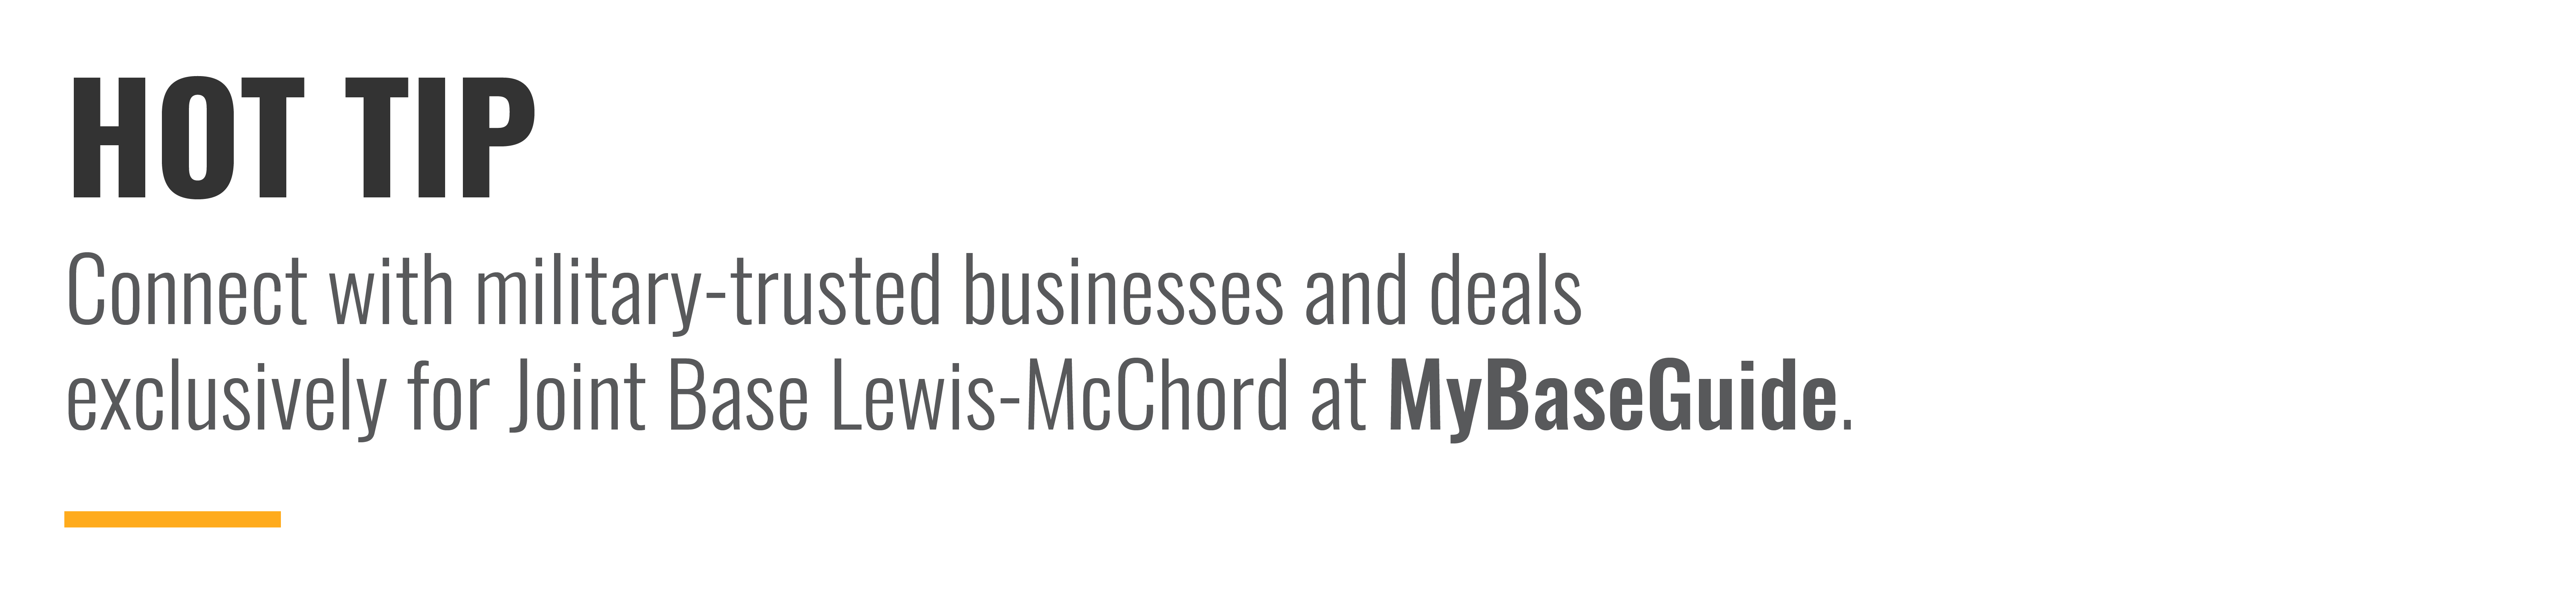 Connect with military-trusted businesses and deals exclusively on MyBaseGuide.